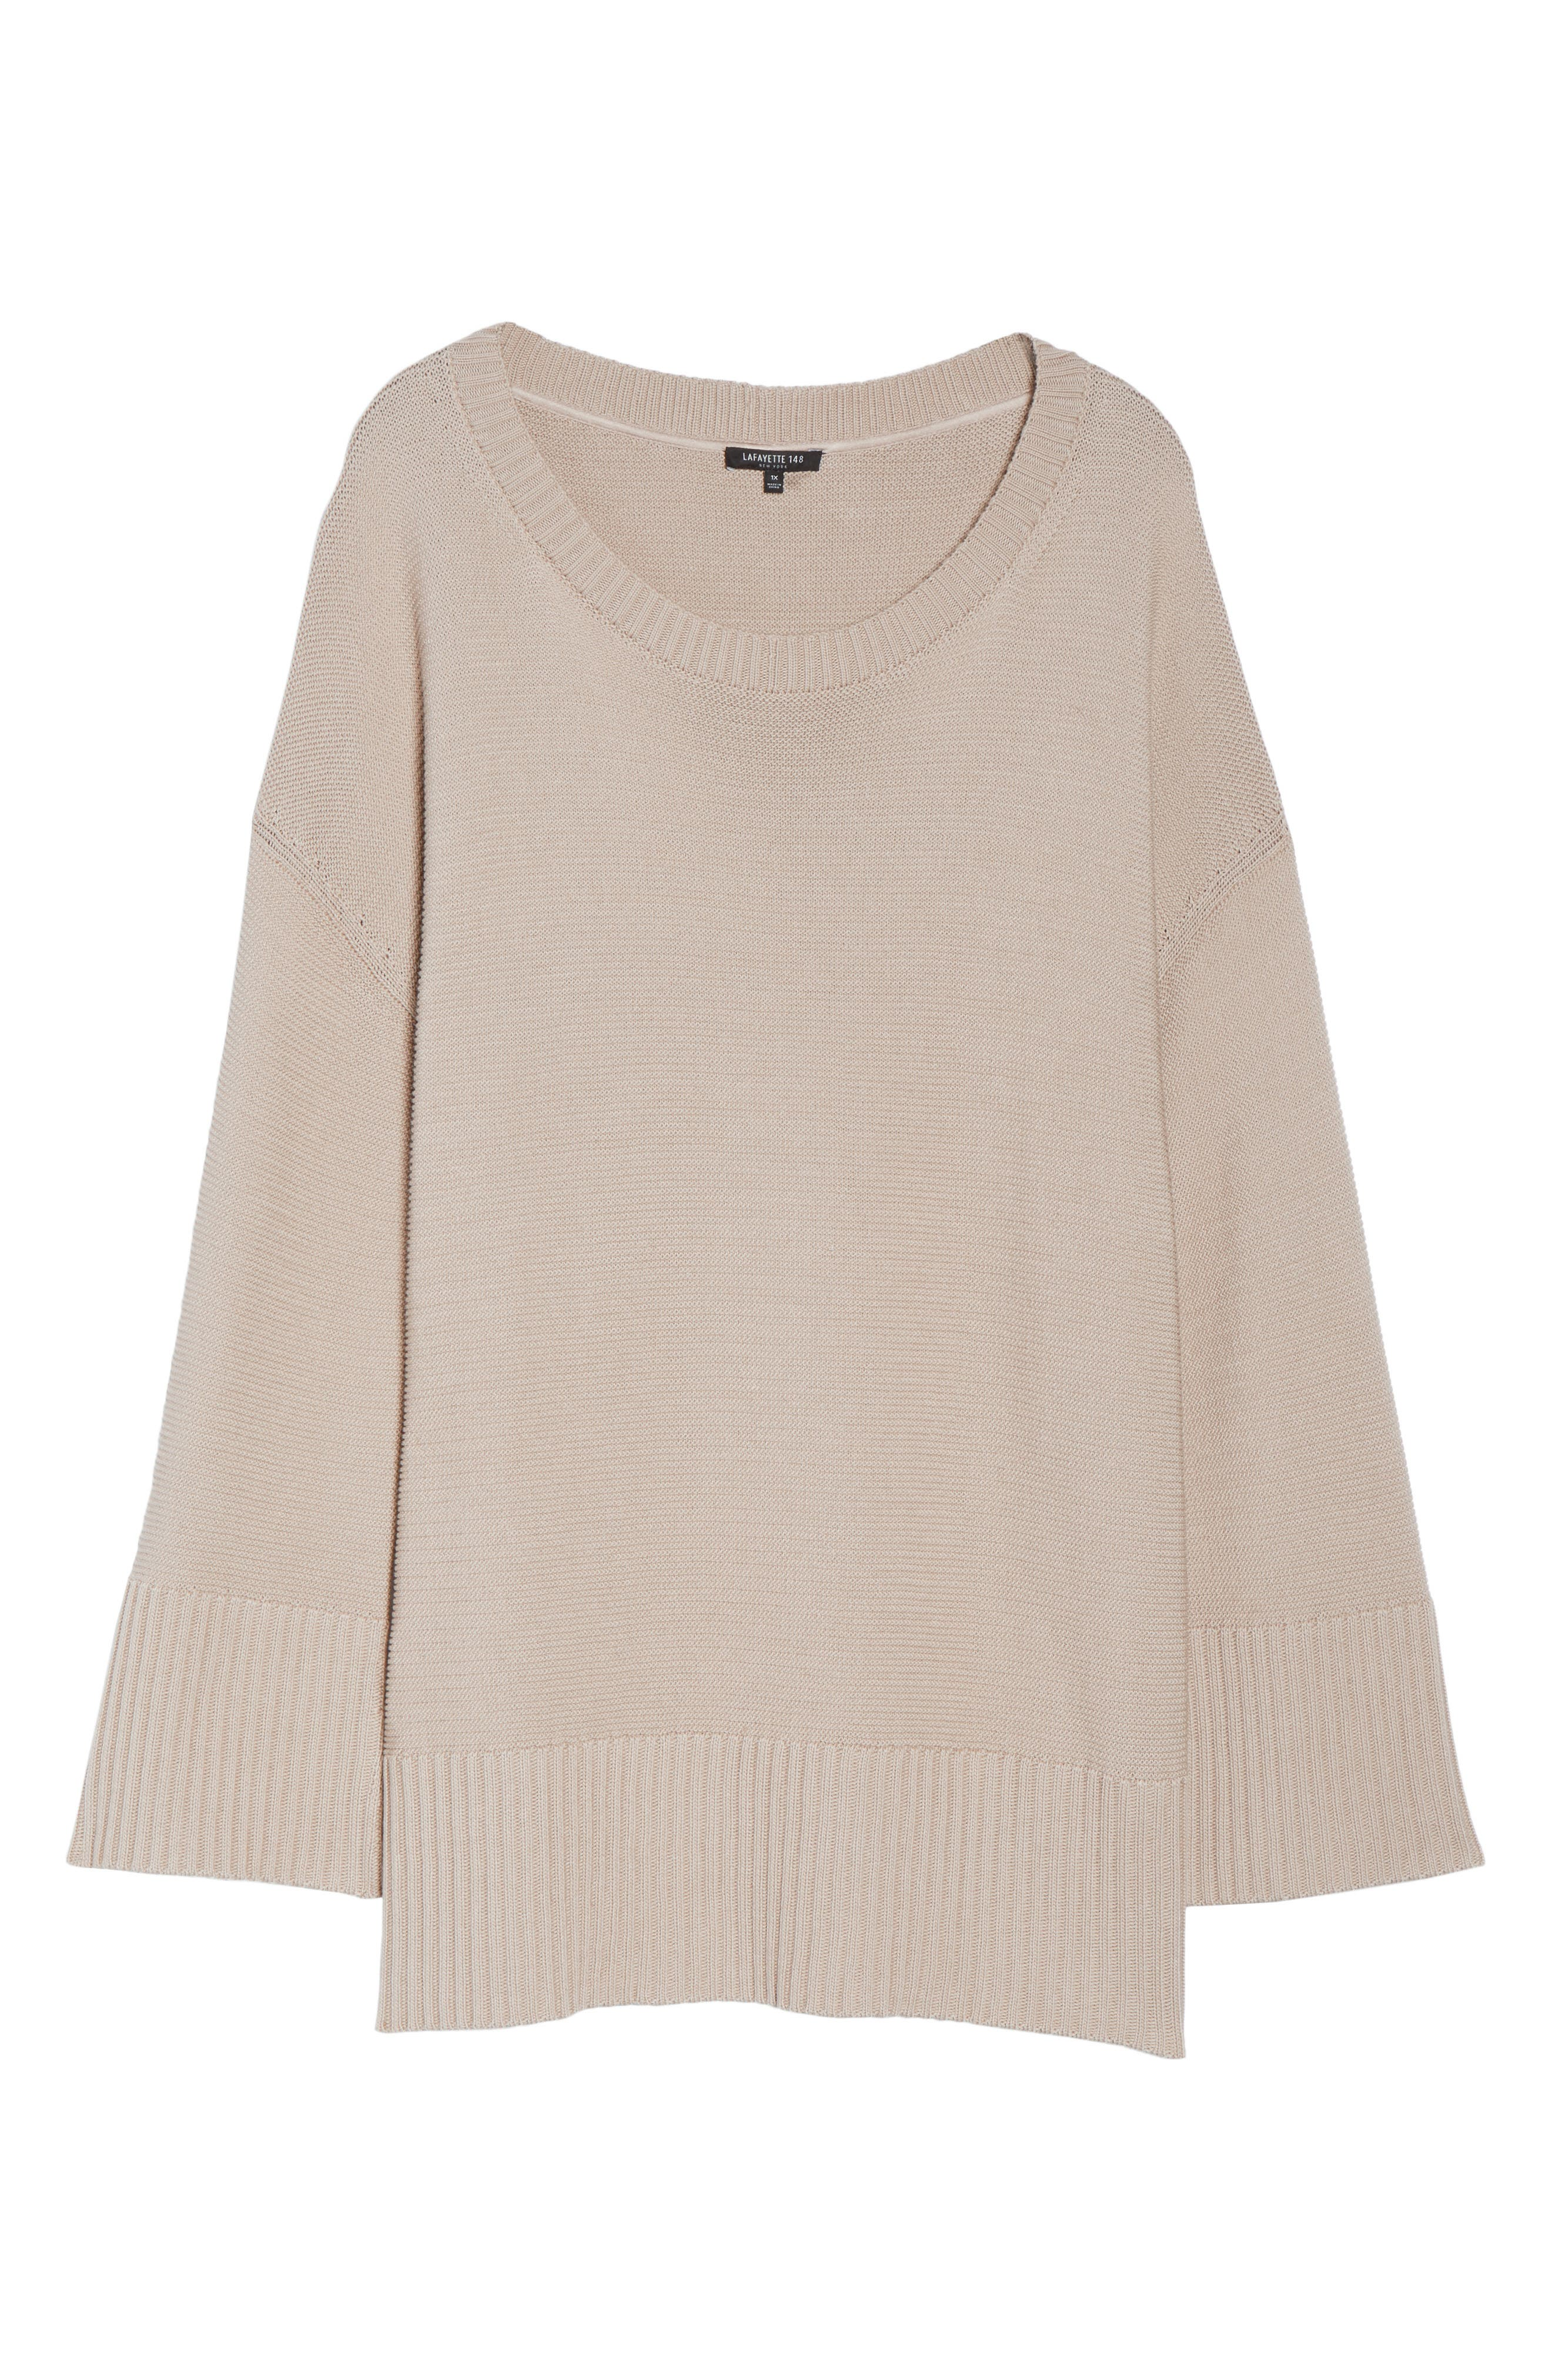 Lafayette 148 Silk and Cotton Sweater,                             Alternate thumbnail 6, color,                             Khaki